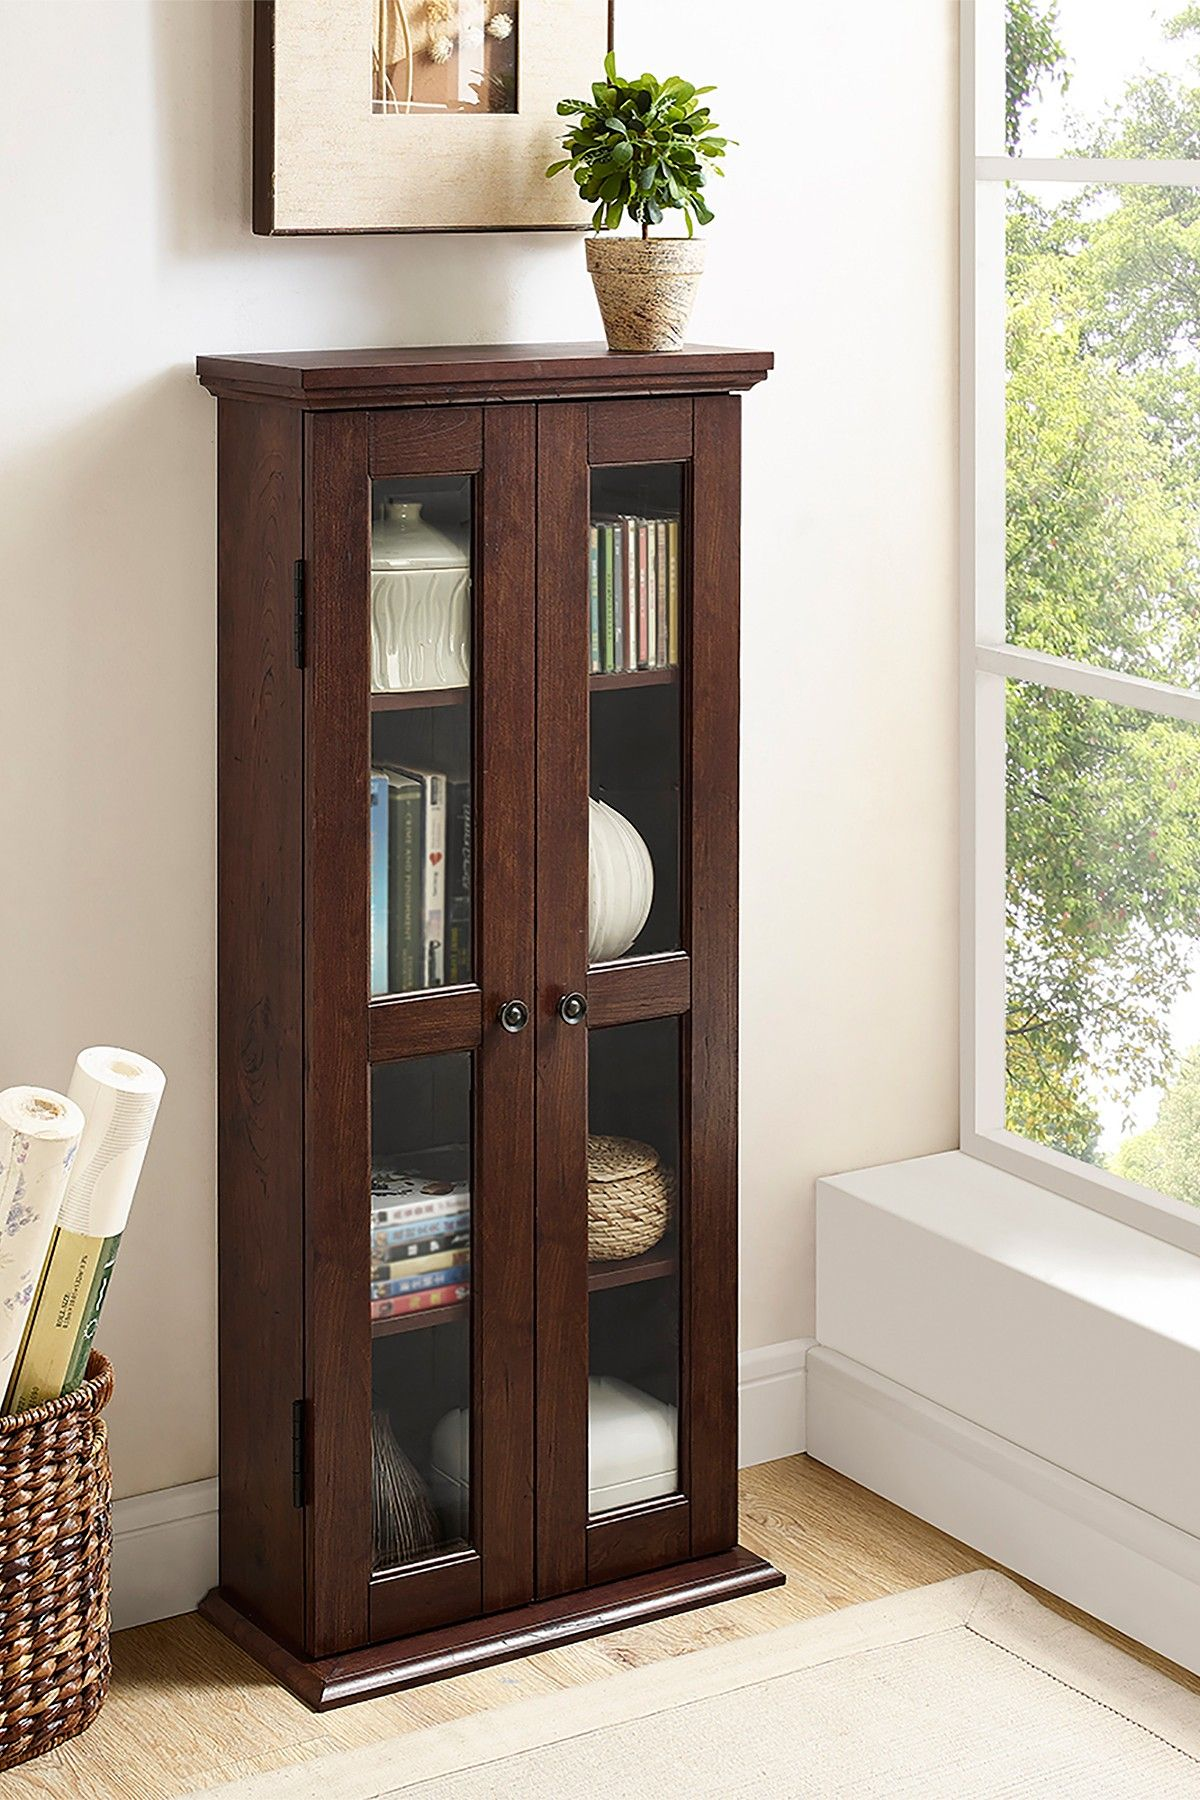 Walker Edison Furniture pany Brown Wood Media Storage Tower